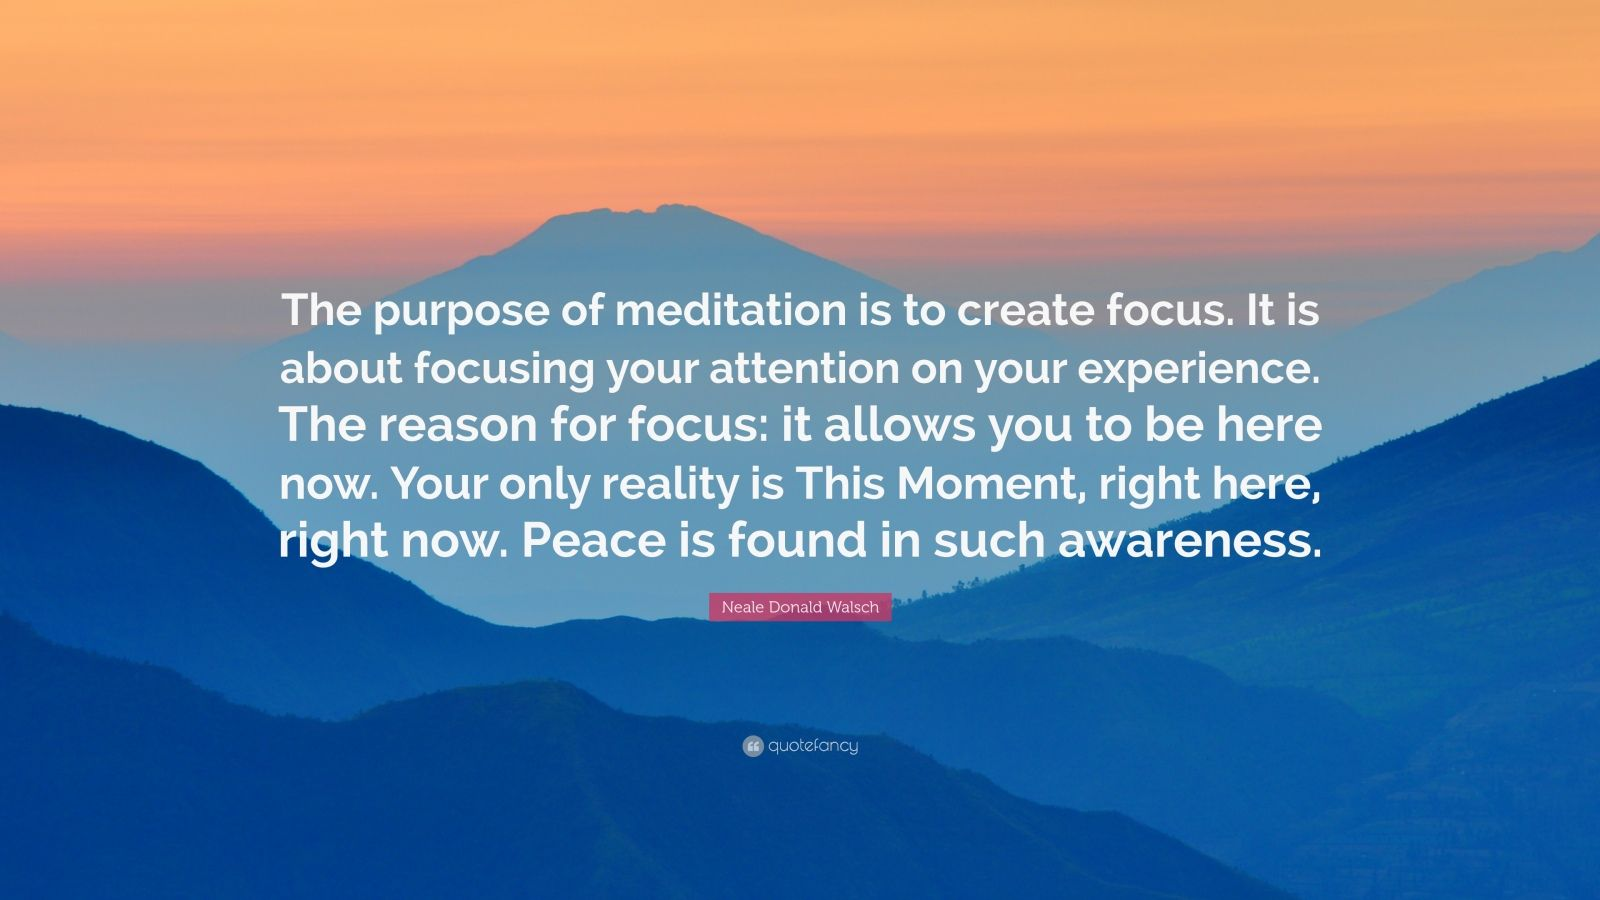 "Neale Donald Walsch Quote: ""The purpose of meditation is to create focus. It is about focusing your attention on your experience. The reason for focus: it allows you to be here now. Your only reality is This Moment, right here, right now. Peace is found in such awareness."""